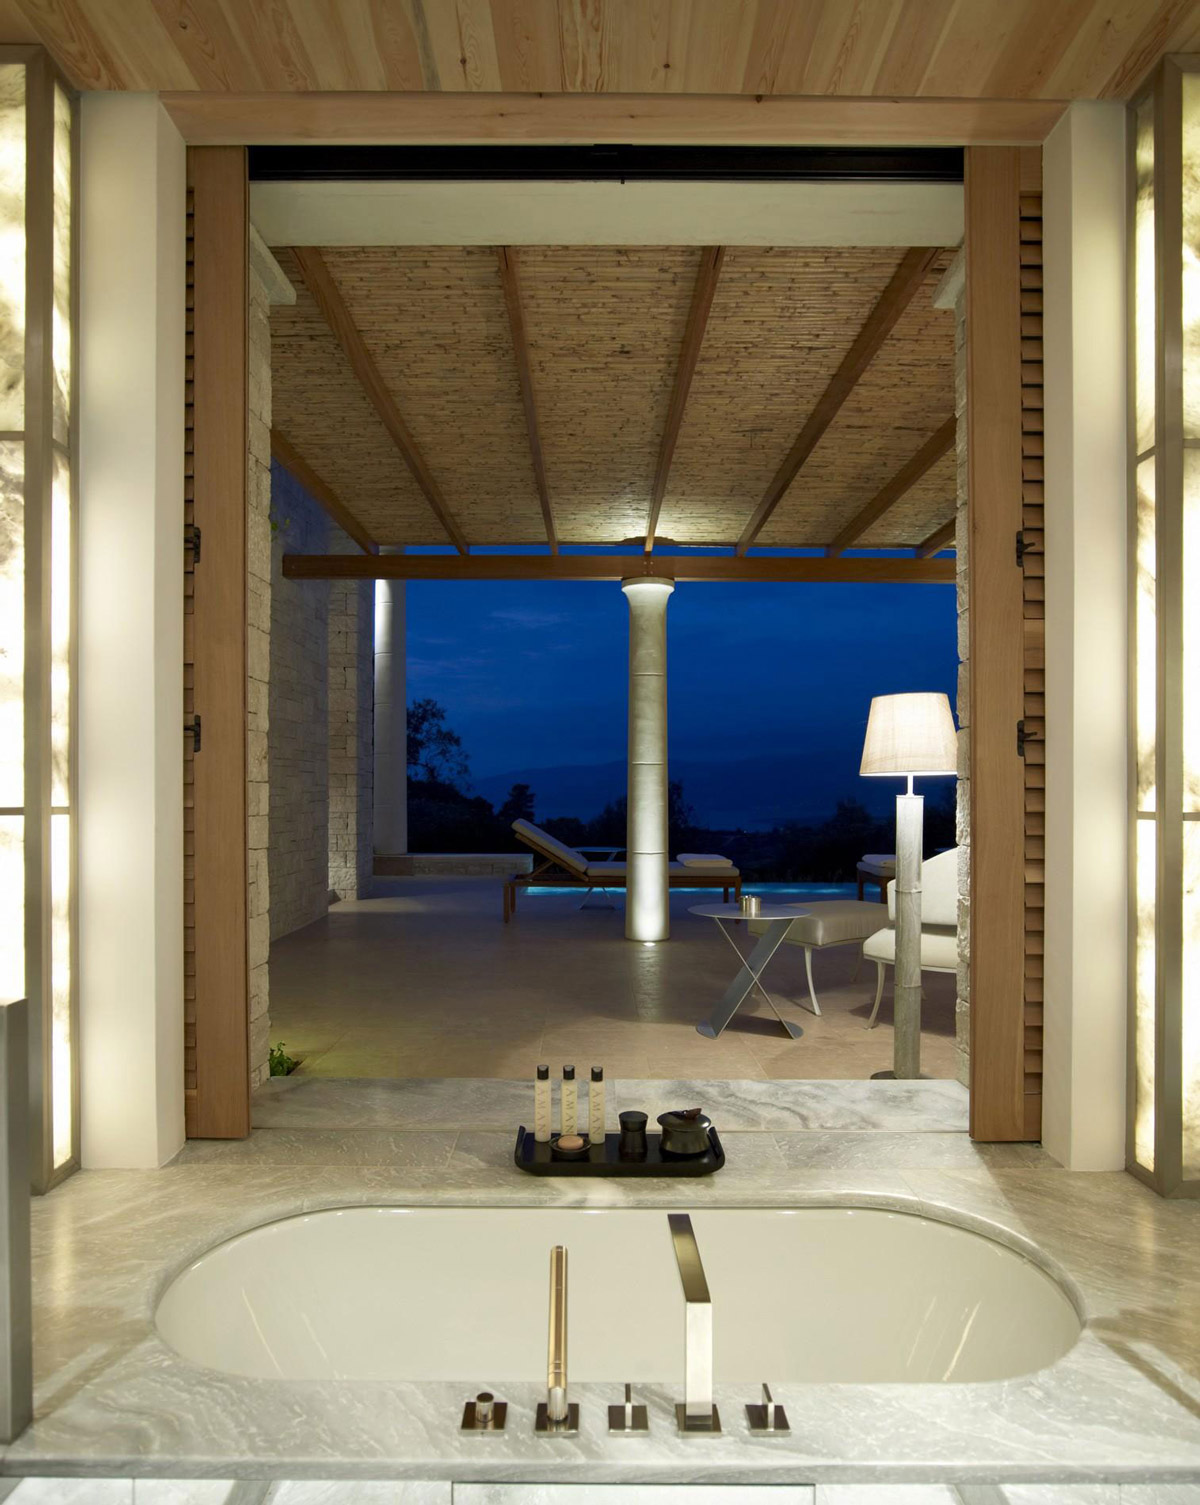 Bathroom, Terrace, Evening Views, Elegant Villas in Kranidi, Greece